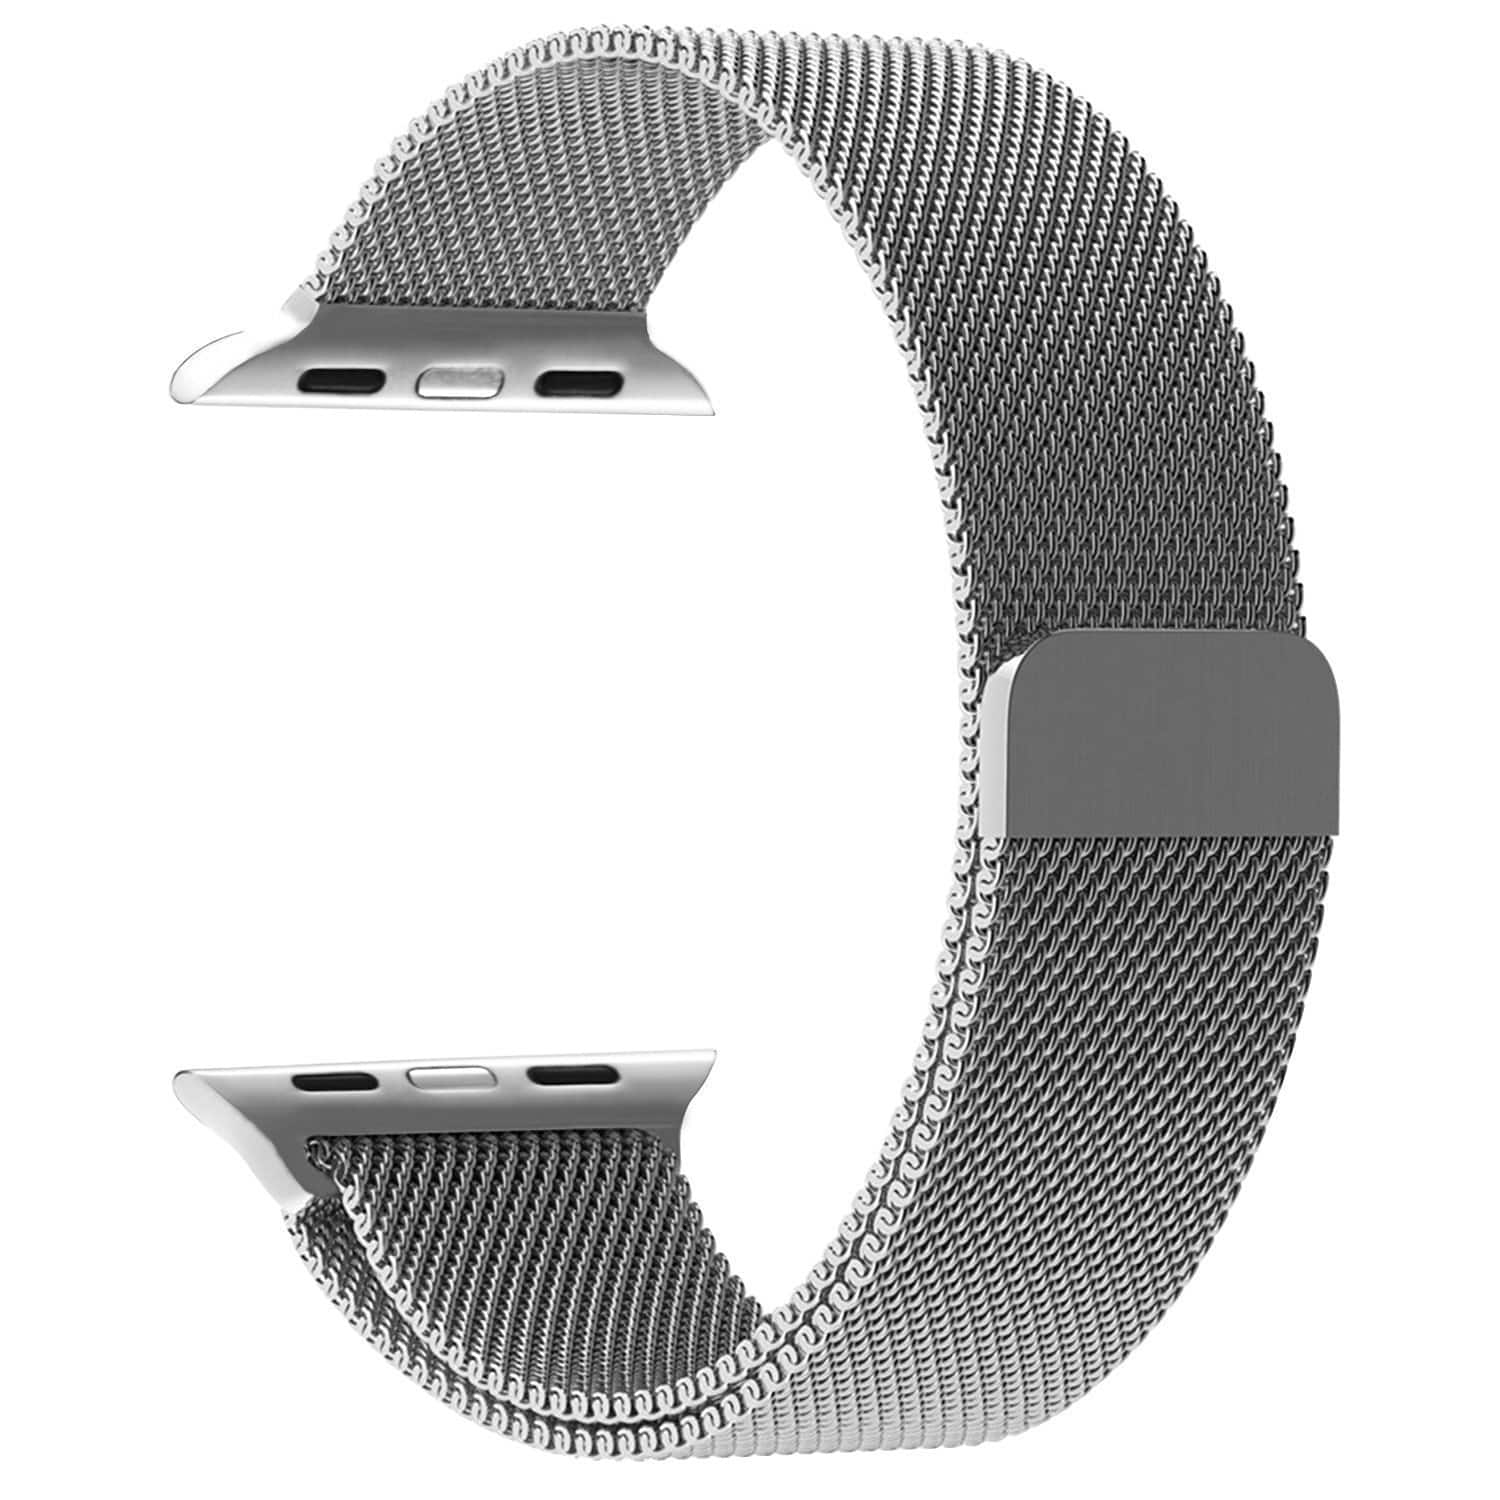 Stainless Steel Magnetic Apple Watch Bands 38/42mm black/silver $5.99+ @Amazon FS w/prime